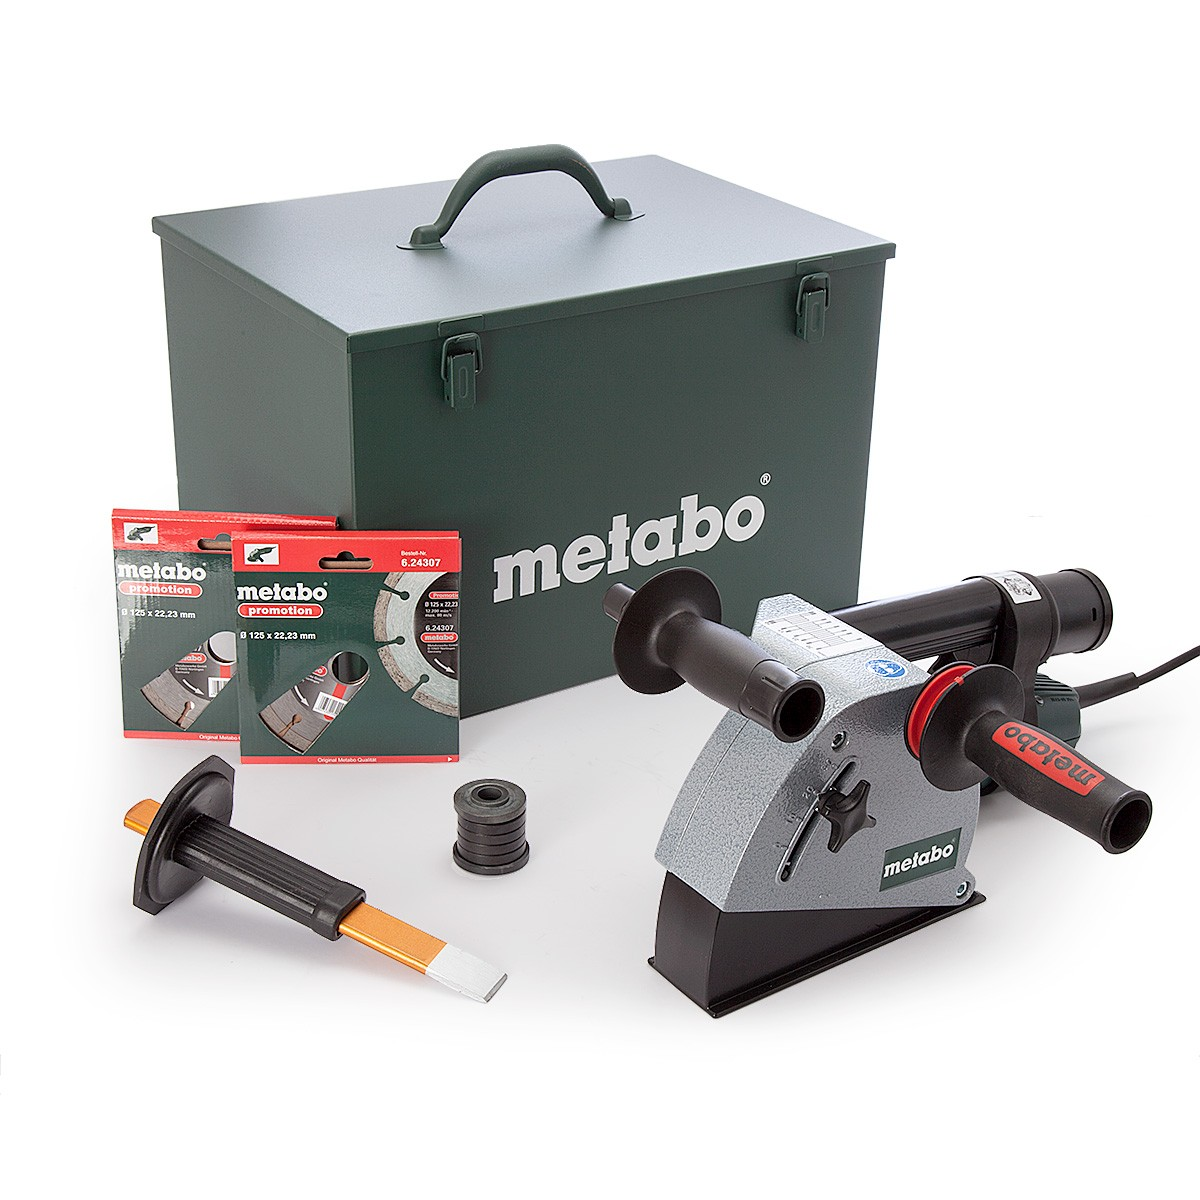 Metabo MFE 30 1400W Wall Chaser inc 2x Diamond Blades in Metal Carry Case